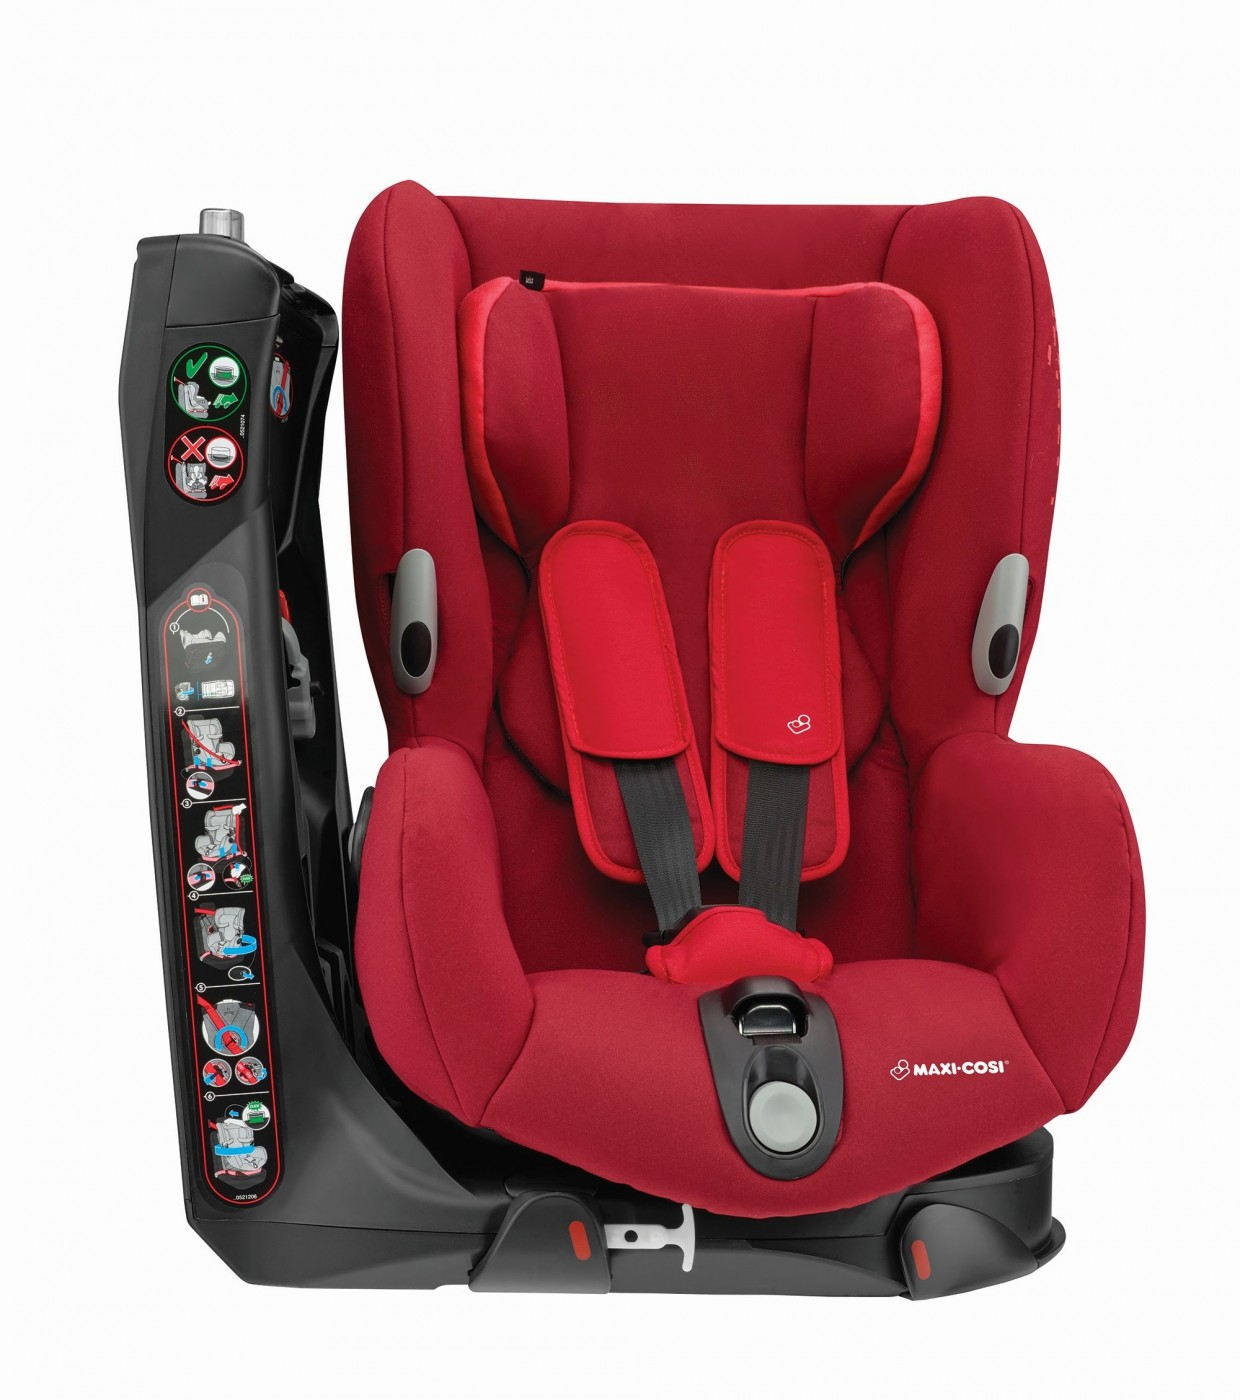 Maxi-Cosi Axiss turvatool, Vivid Red, UUED TOOTED, Turvatoolid, hällid, Turvatoolid 9-18 kg, Turvavarustus